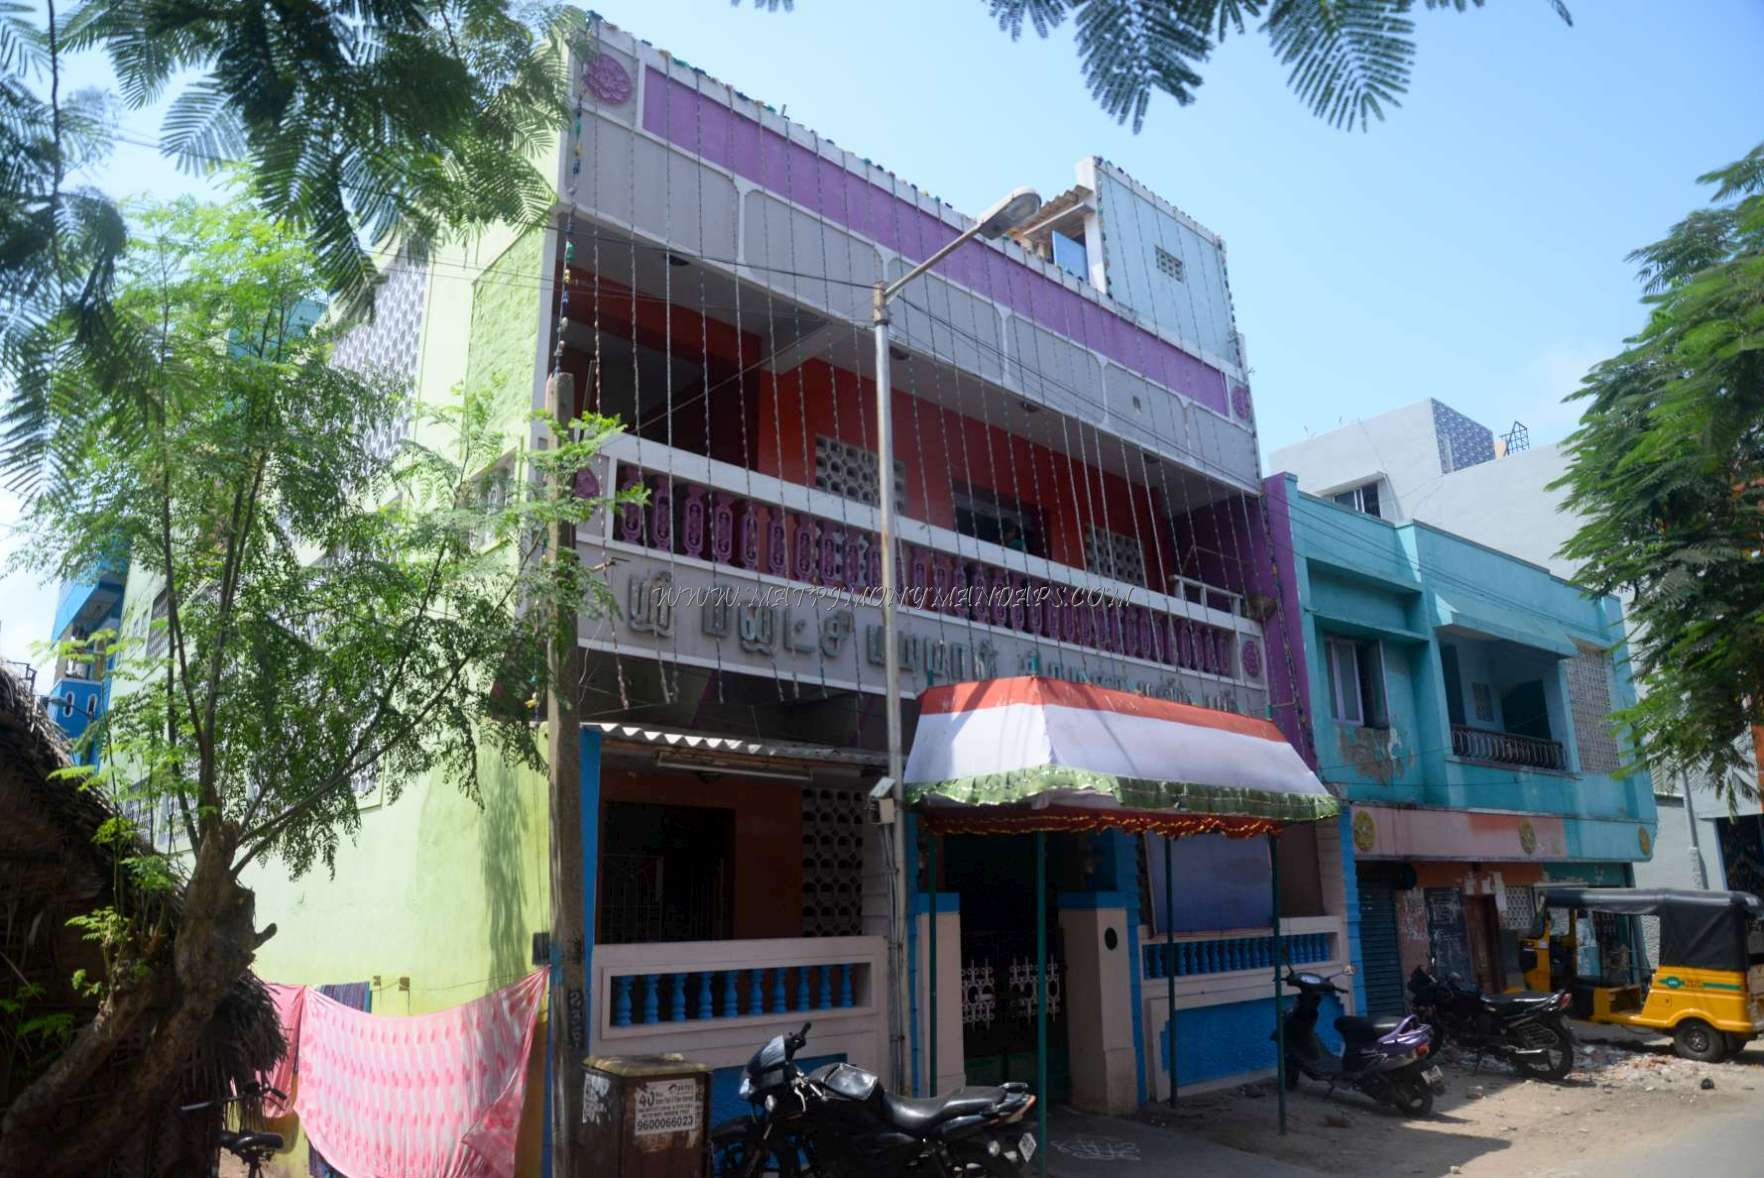 Find the availability of the Sri Meenakshi Amman Thirumana Mandapam in Tiruvottiyur, Chennai and avail special offers